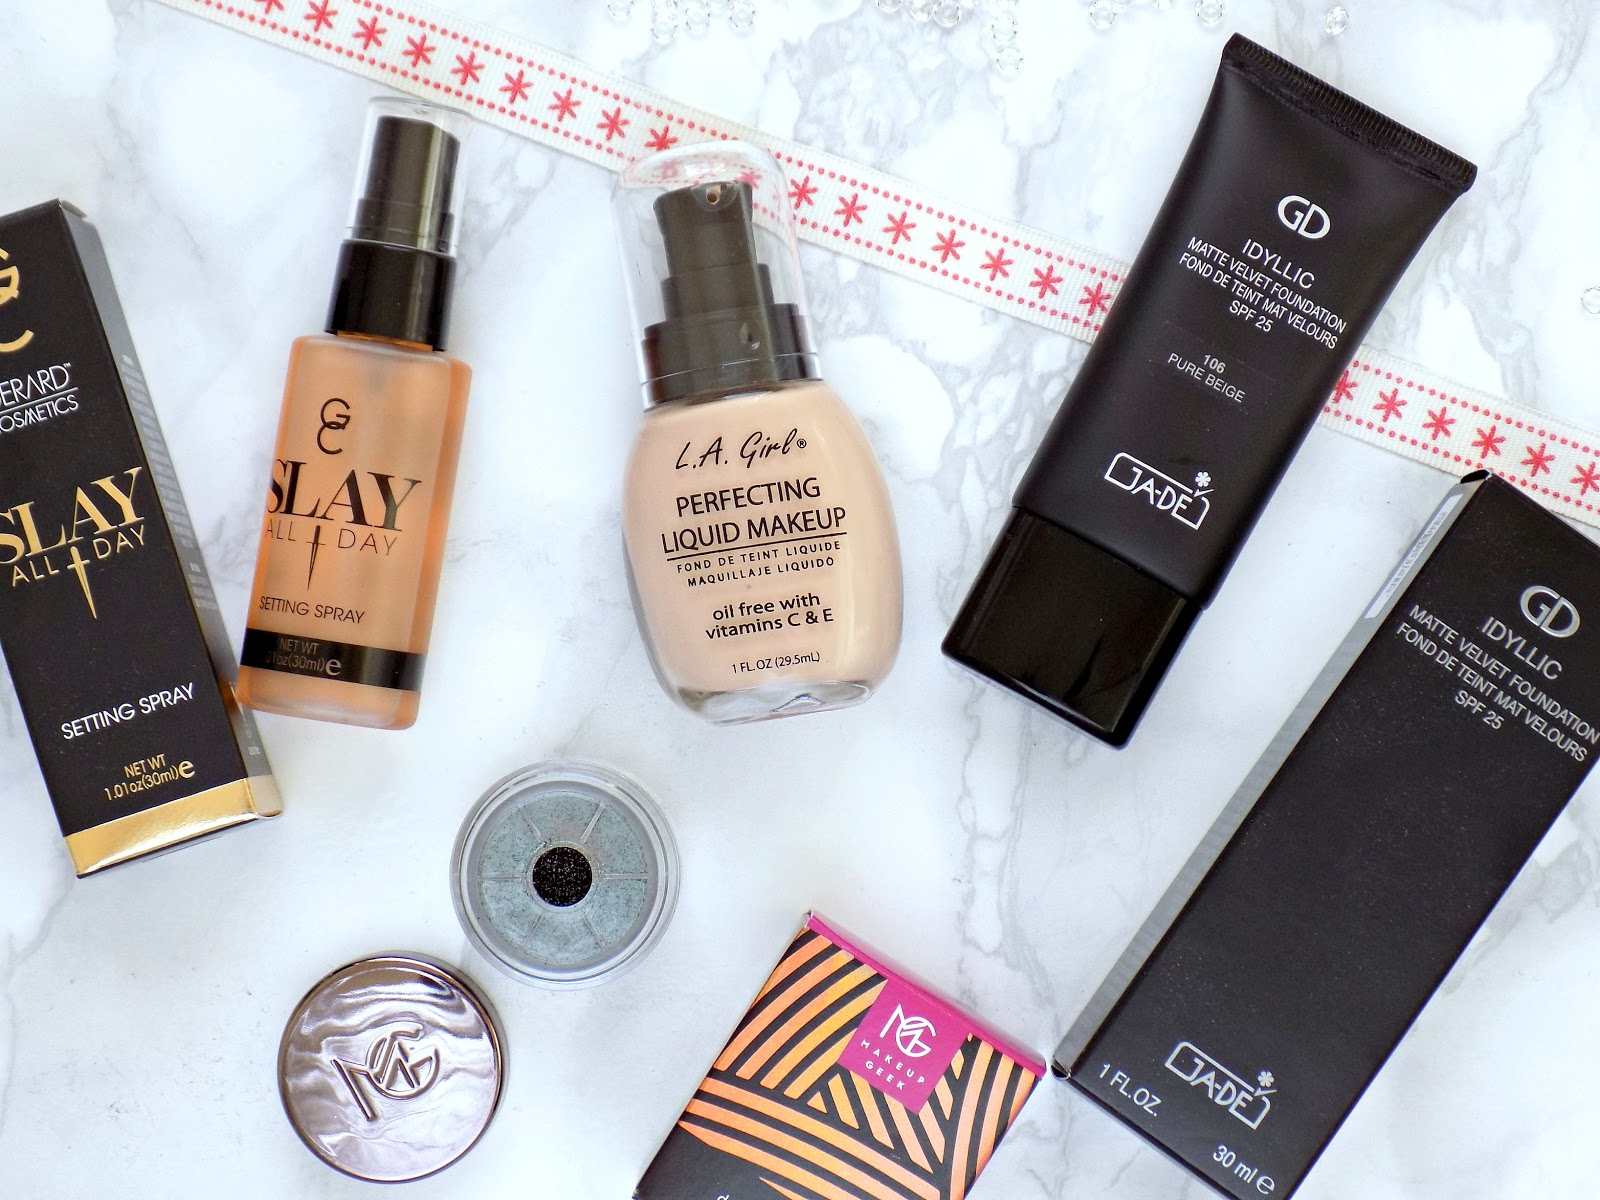 Black Friday beauty haul and Christmas stocking fillers ideas for beauty lovers